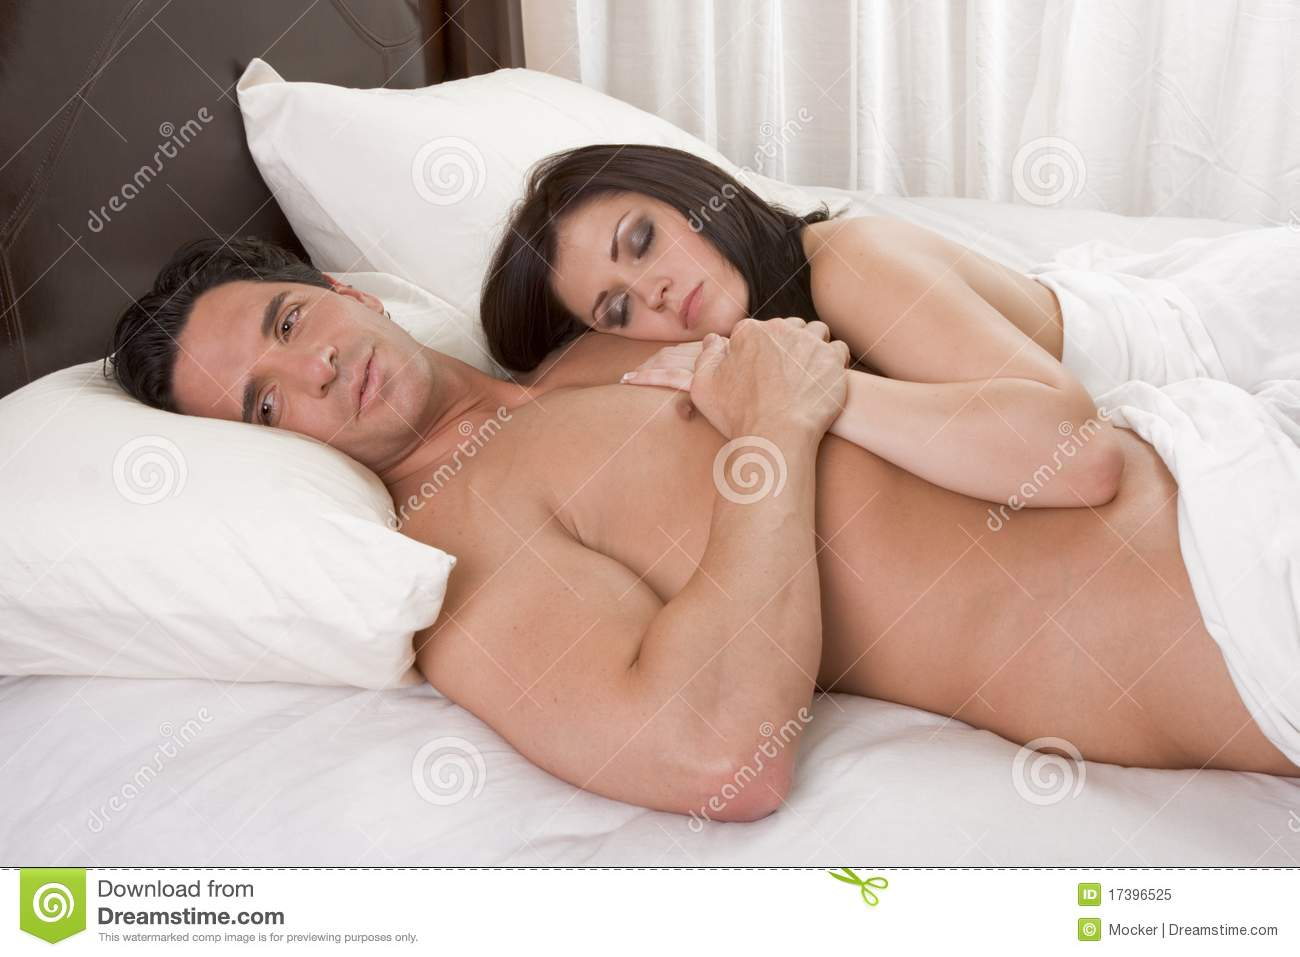 Nude couples sleeping methods think